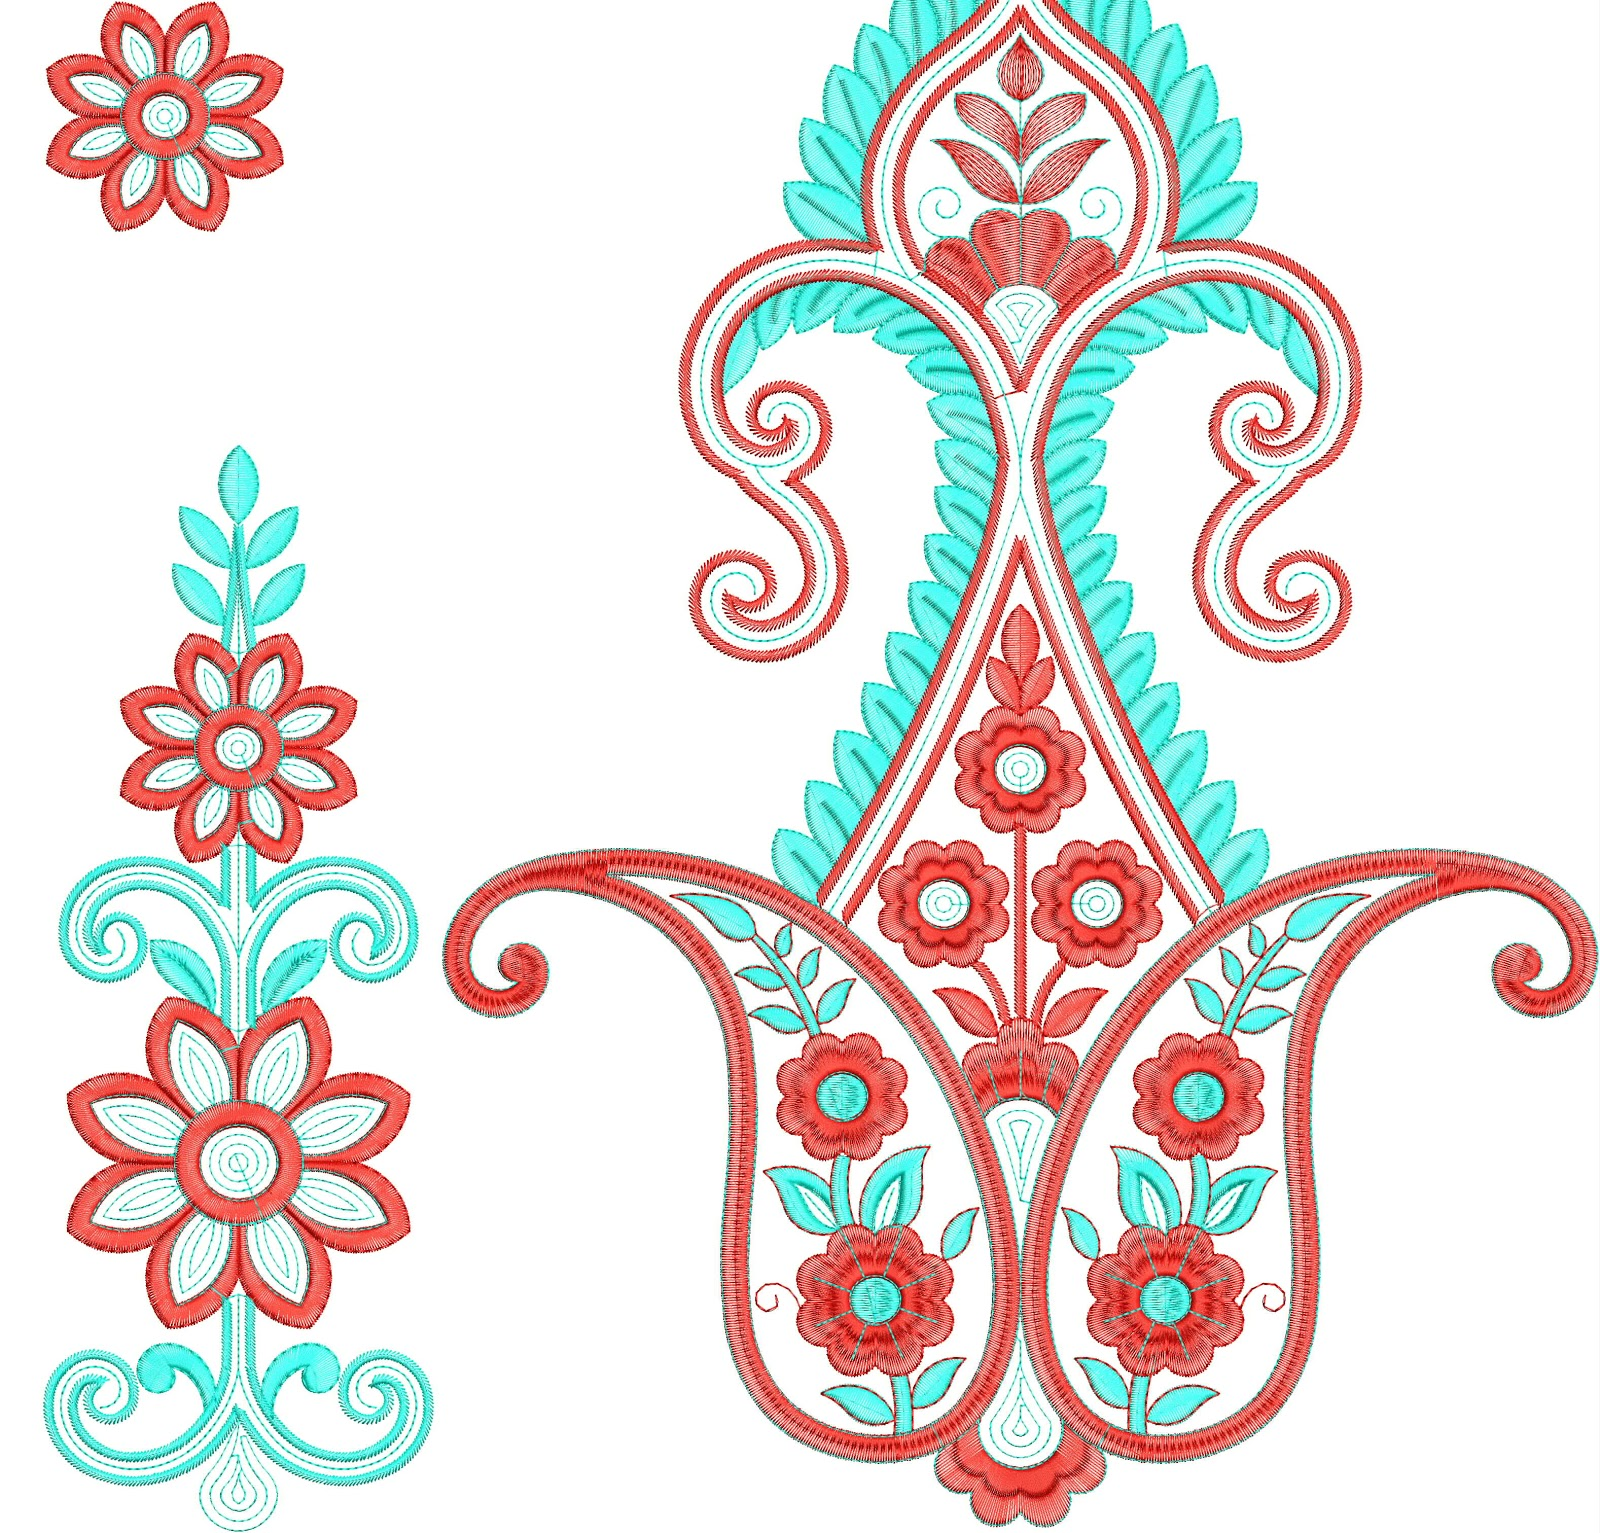 Free embroidery design downloads designs